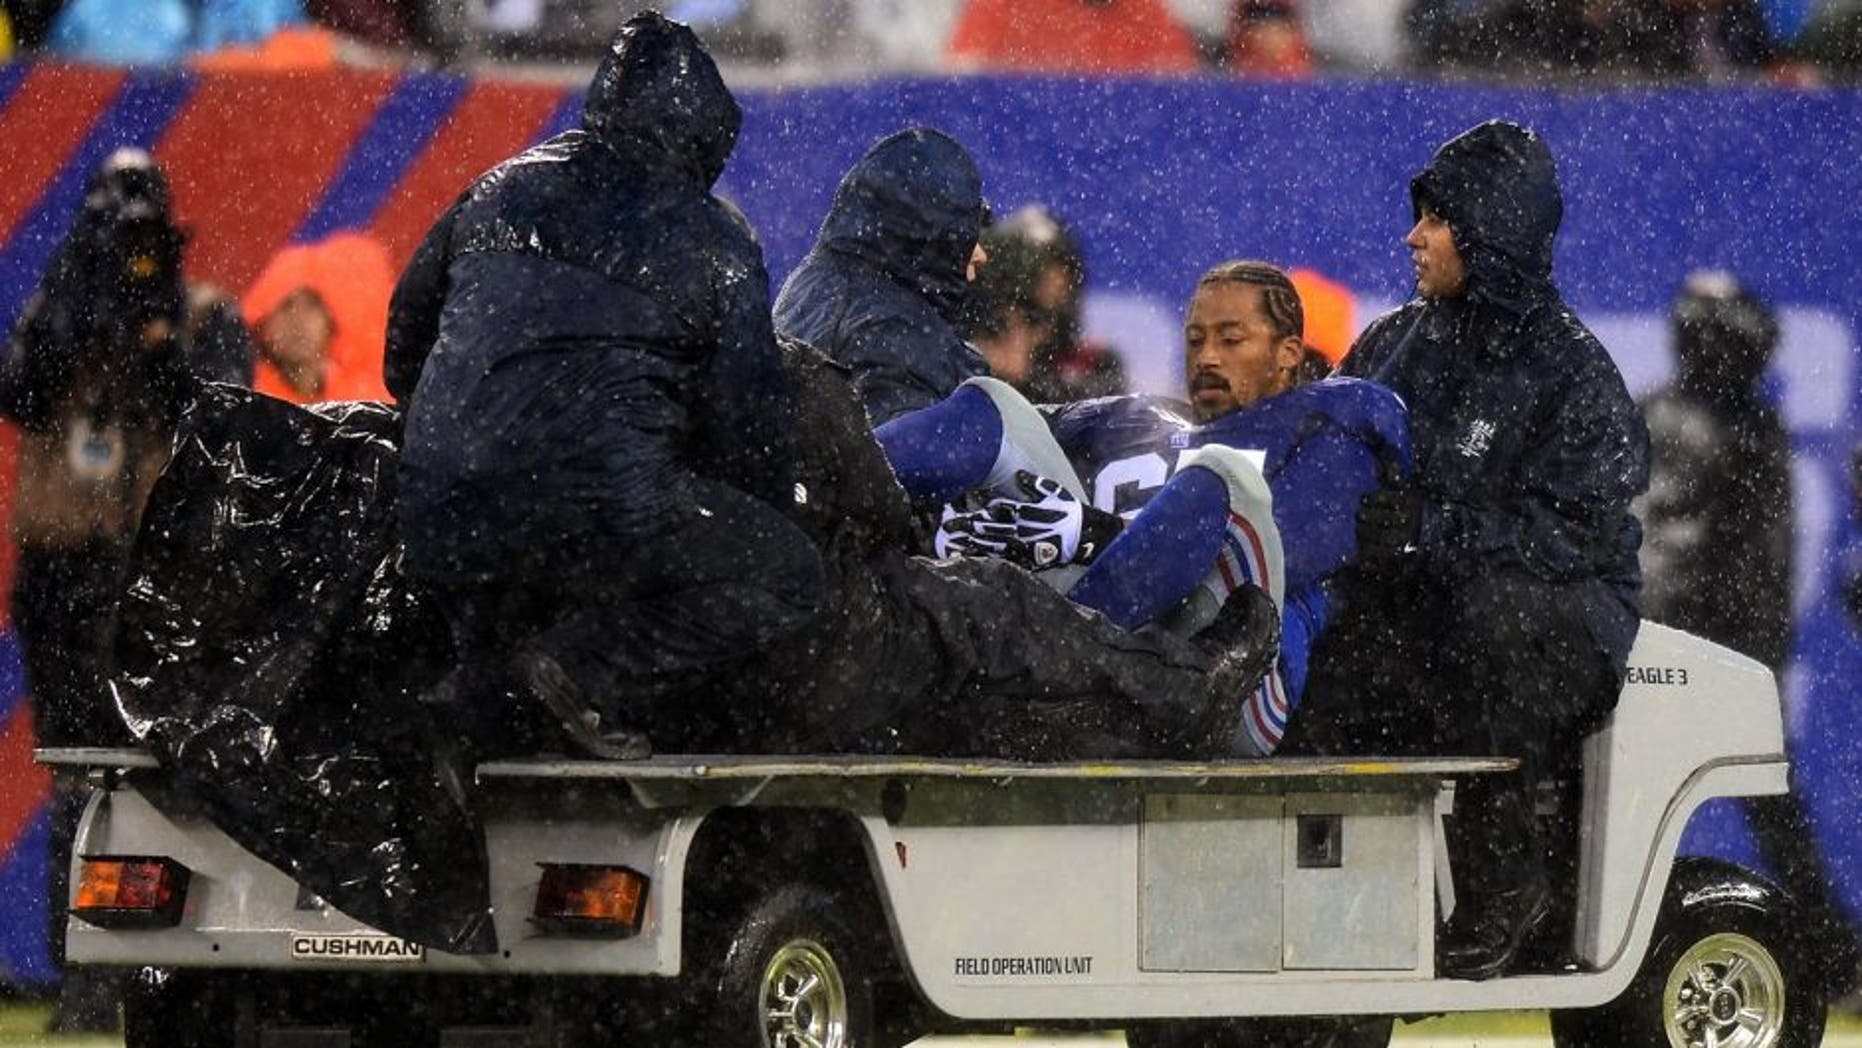 EAST RUTHERFORD, NJ - DECEMBER 29: Tackle Will Beatty #65 of the New York Giants leaves the game against the Washington Redskins with an injury during the second half at MetLife Stadium on December 29, 2013 in East Rutherford, New Jersey. (Photo by Ron Antonelli/Getty Images)